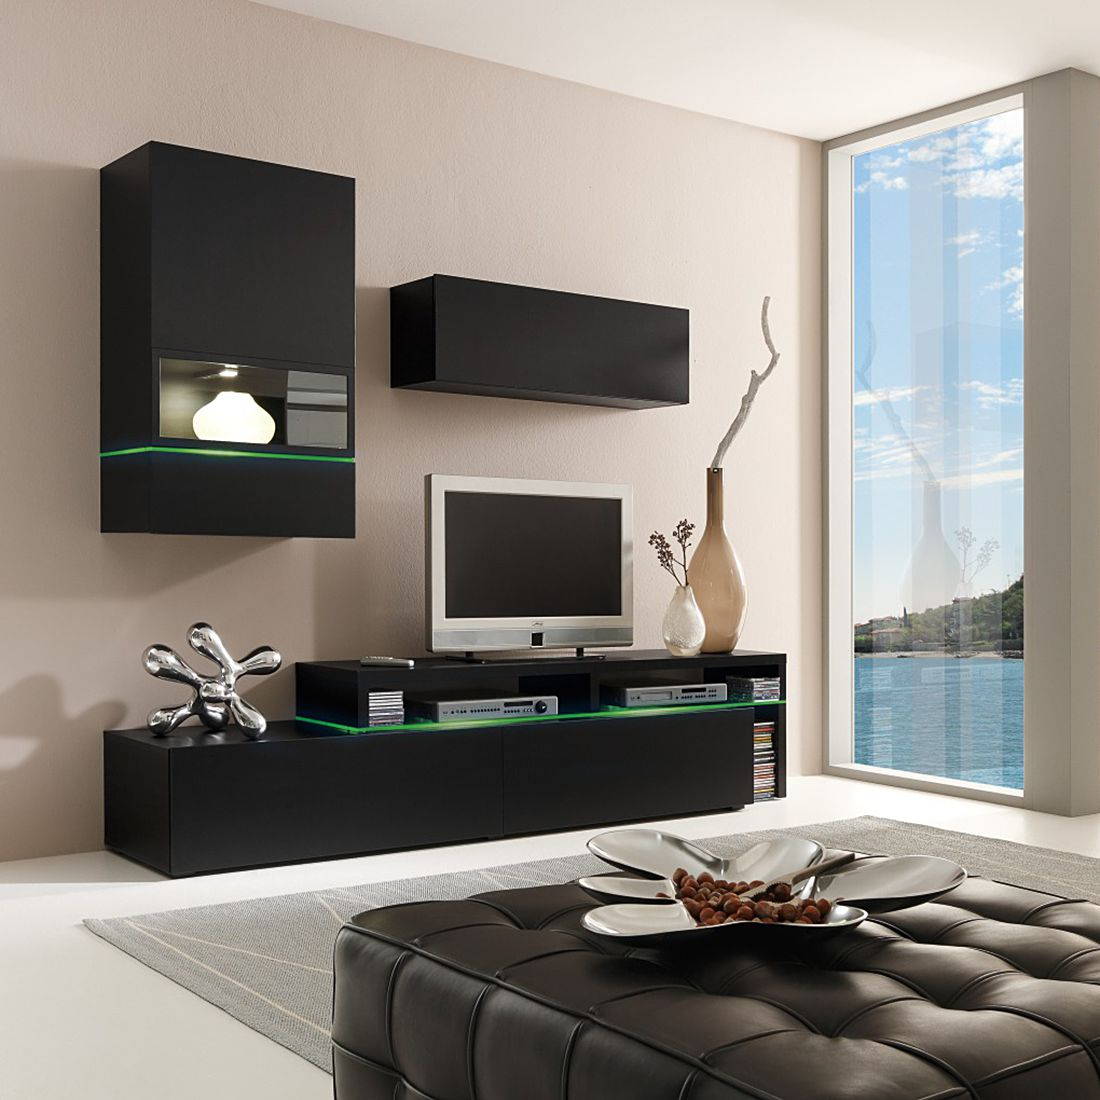 wohnwand colourart 3 teilig schwarz schwarz ohne. Black Bedroom Furniture Sets. Home Design Ideas